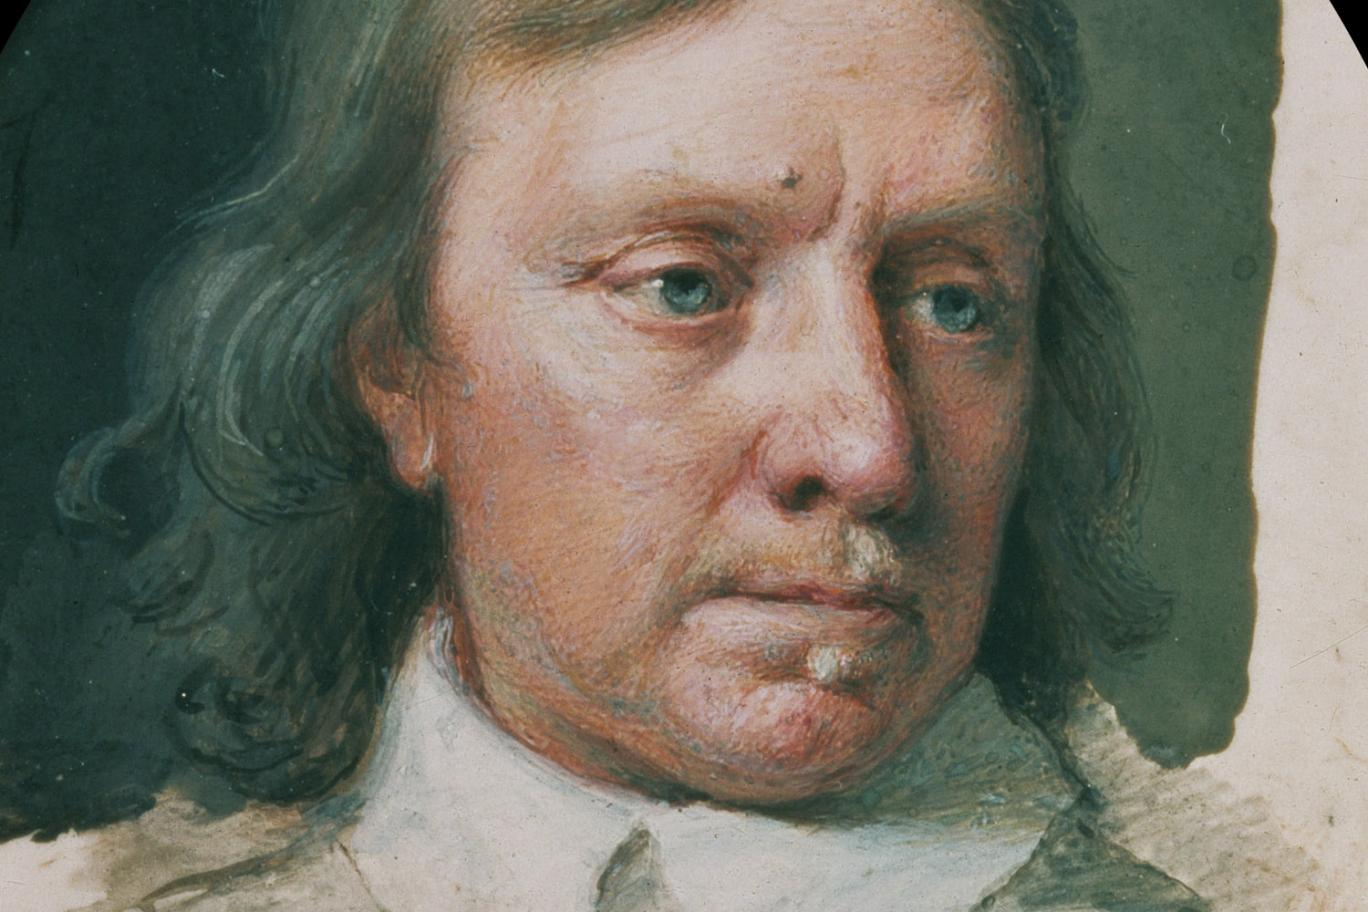 Miniature of Oliver Cromwell painted c. 1650 by Samuel Cooper. Image courtesy of Bridgeman Images